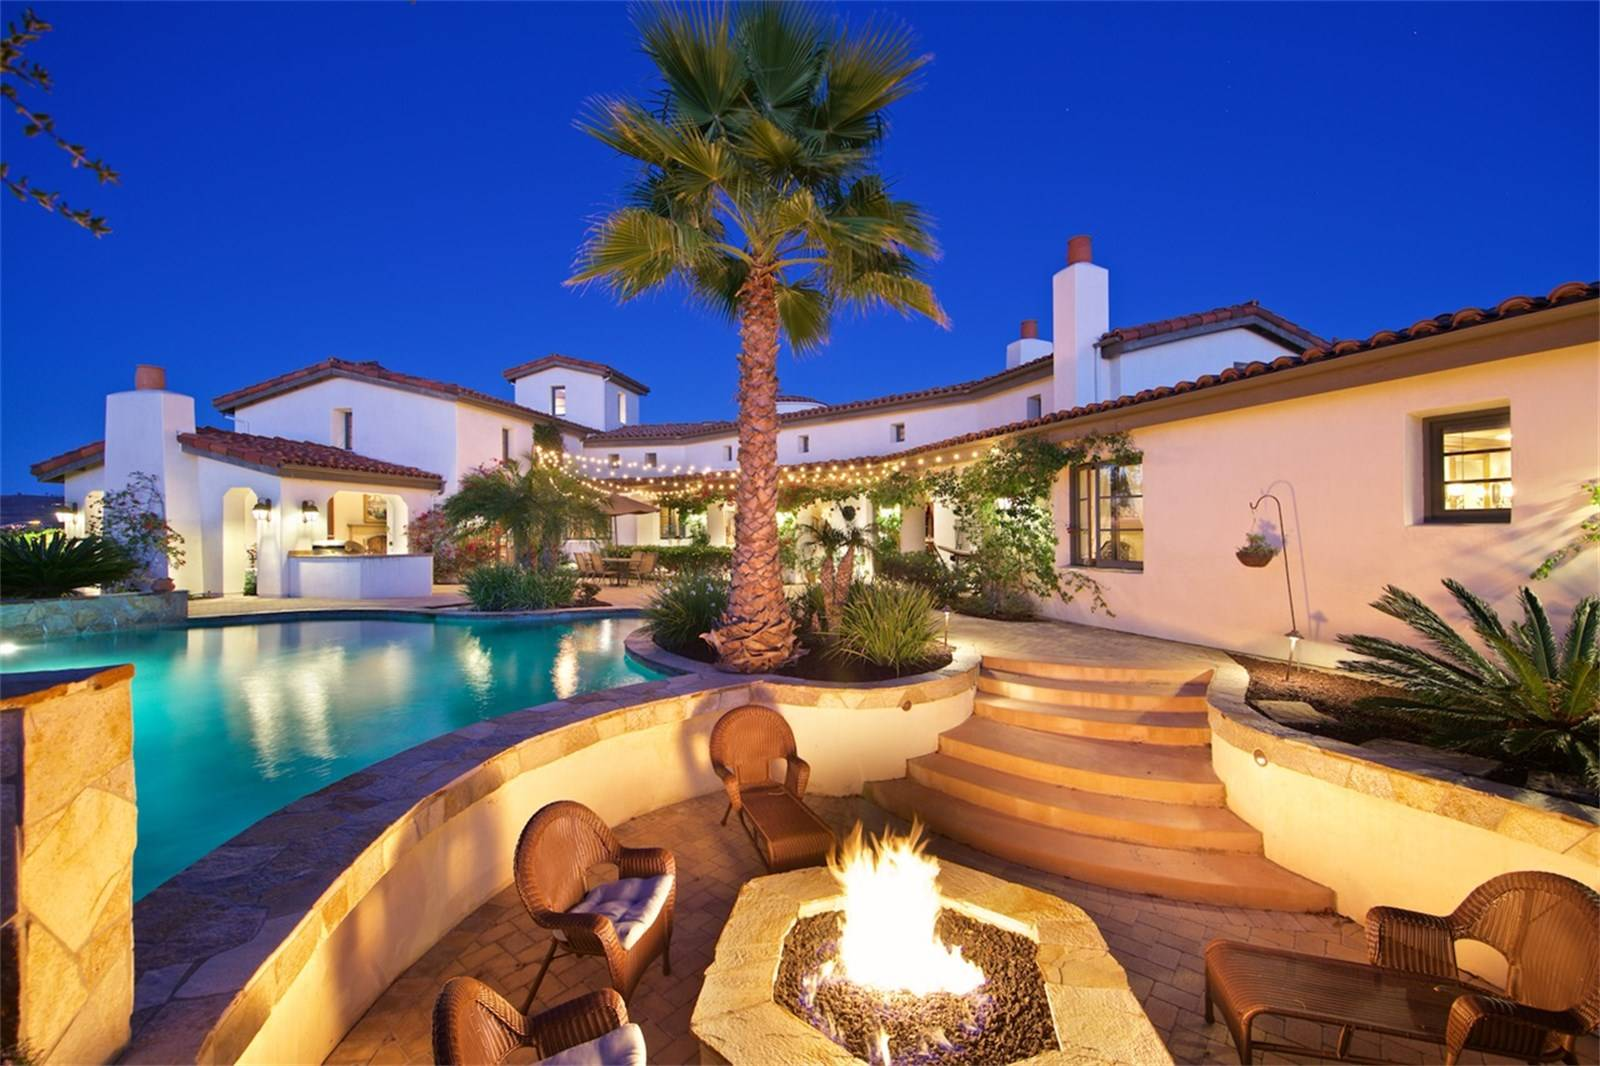 Luxury home sales in San Diego, California soared by 26% year-on-year.